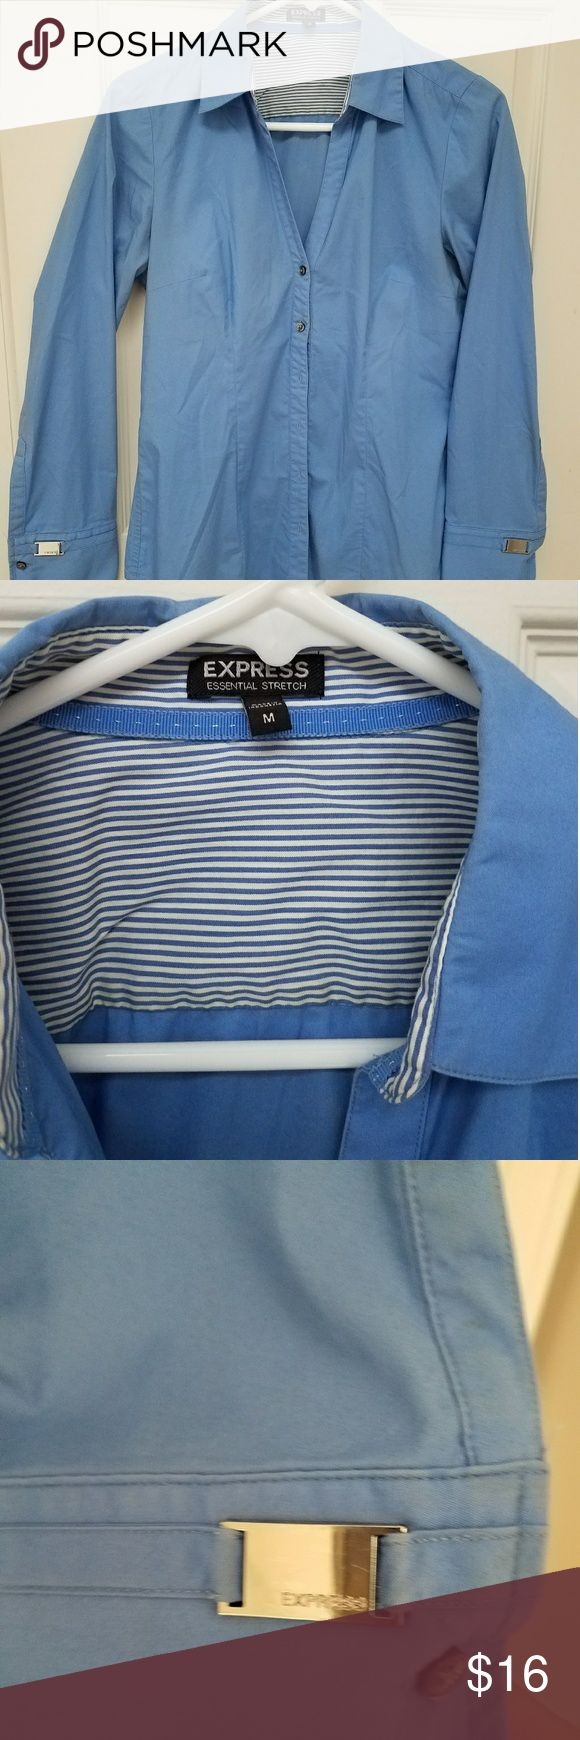 Essential express dress shirt Great color blue for work with cufflink detail Express Tops Button Down Shirts